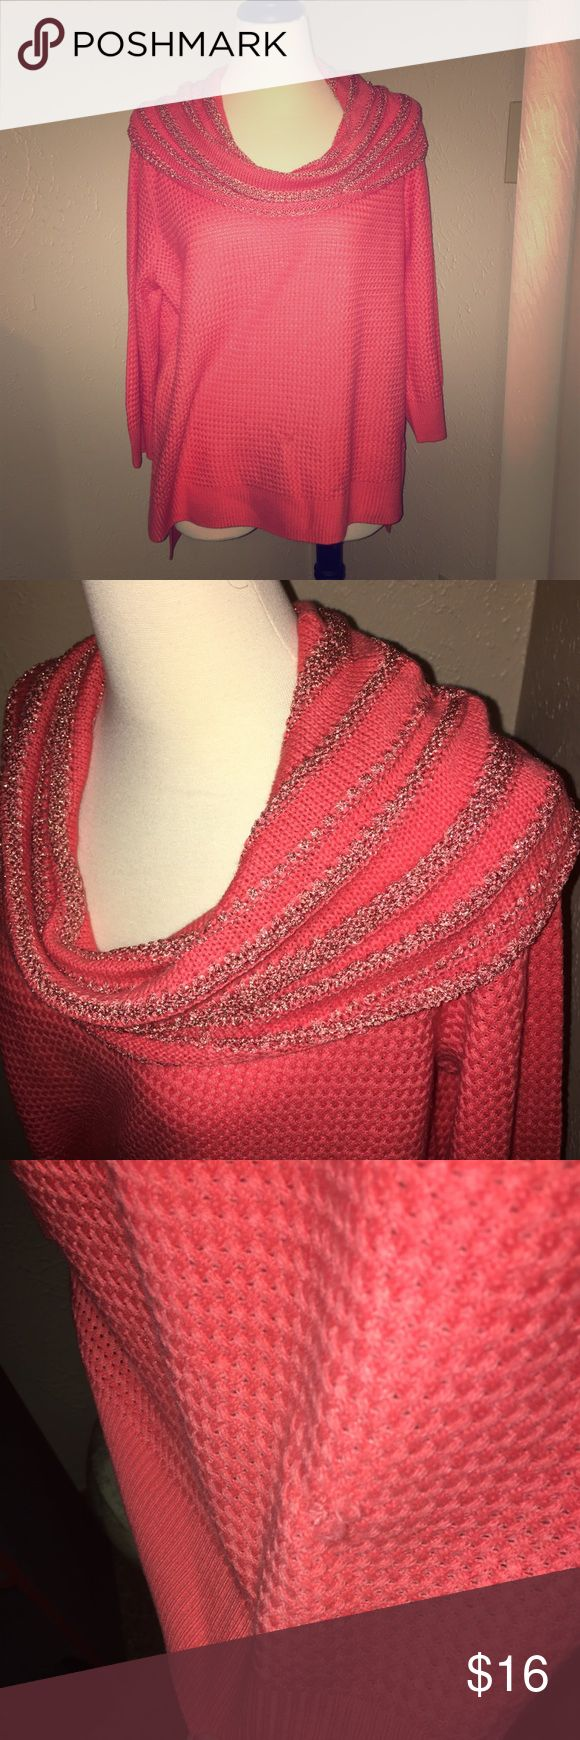 Beautiful coral cowl neck sweater This is such a cute sweater. Looks awesome with a denim collared shirt under. There is a small snag in the front but you may be able to cut or sew in. Other then that it was only worn once so in brand new condition. True to size as well. ☺❤️ New York & Company Sweaters Cowl & Turtlenecks